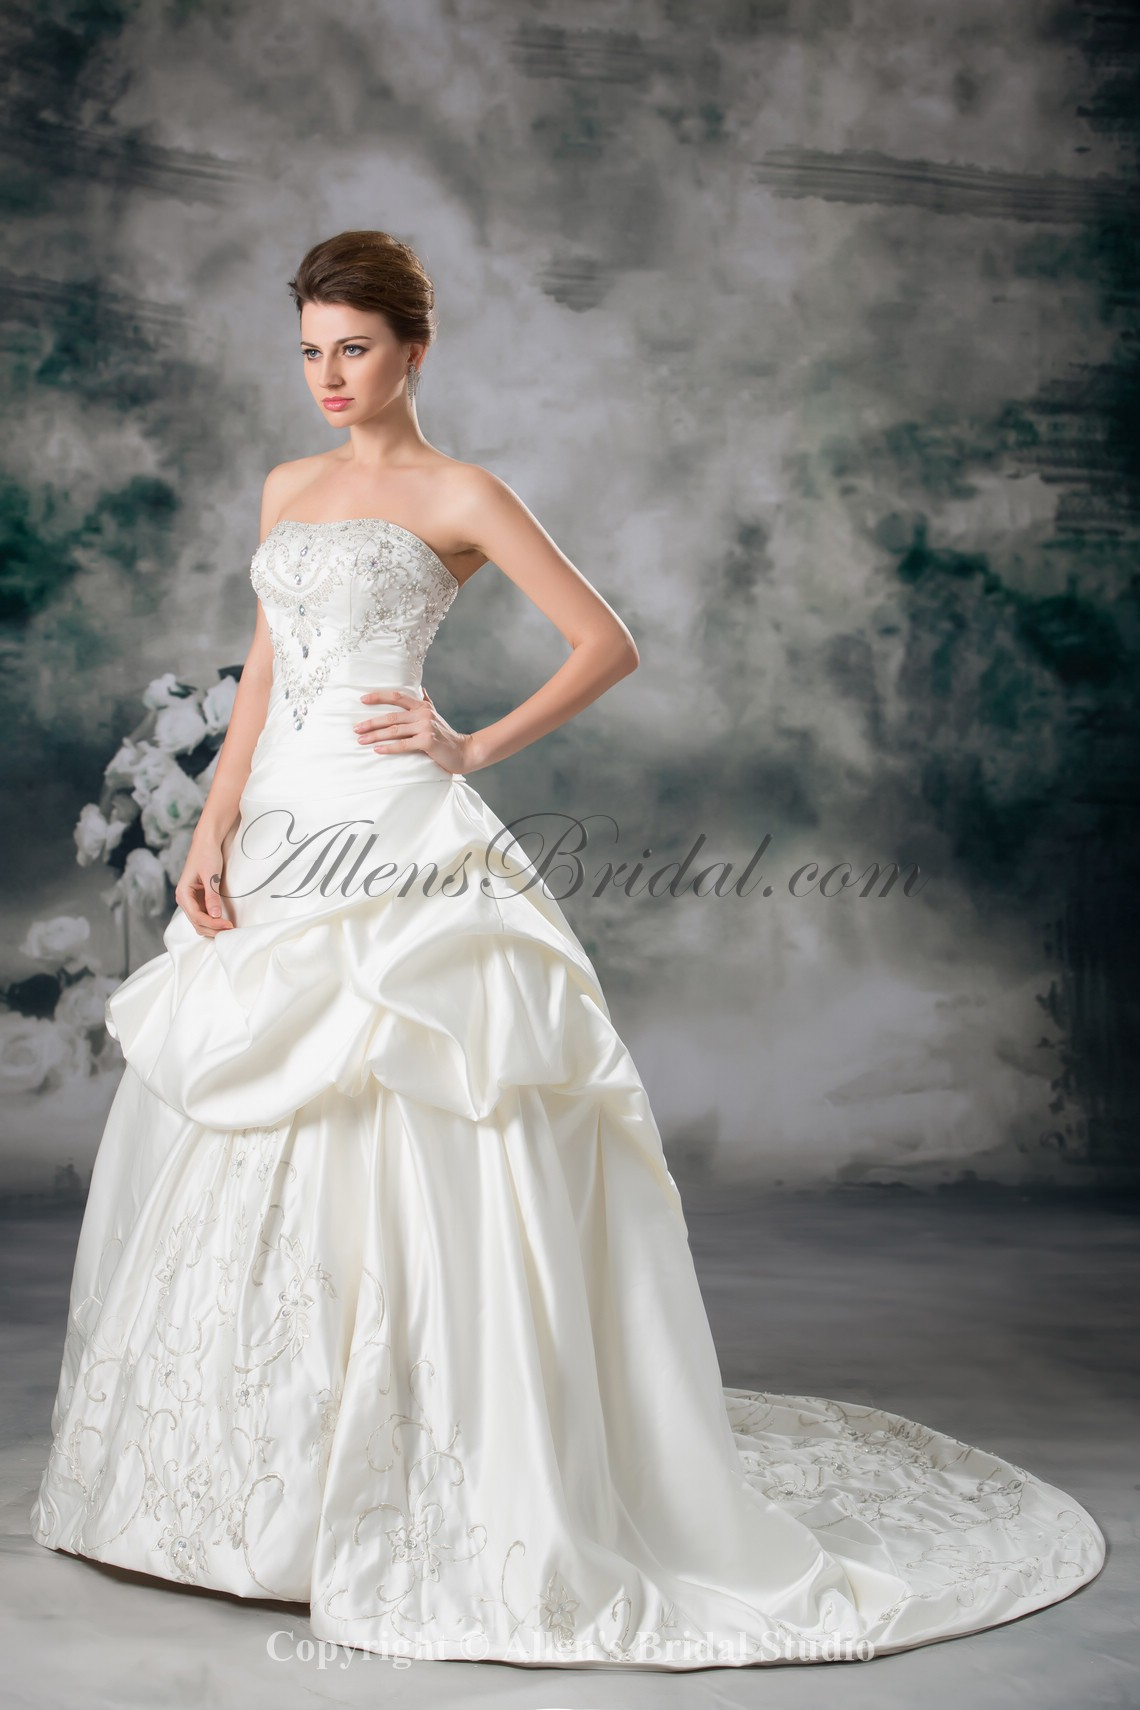 /975-7816/satin-strapless-neckline-sweep-train-ball-gown-embroidered-wedding-dress.jpg